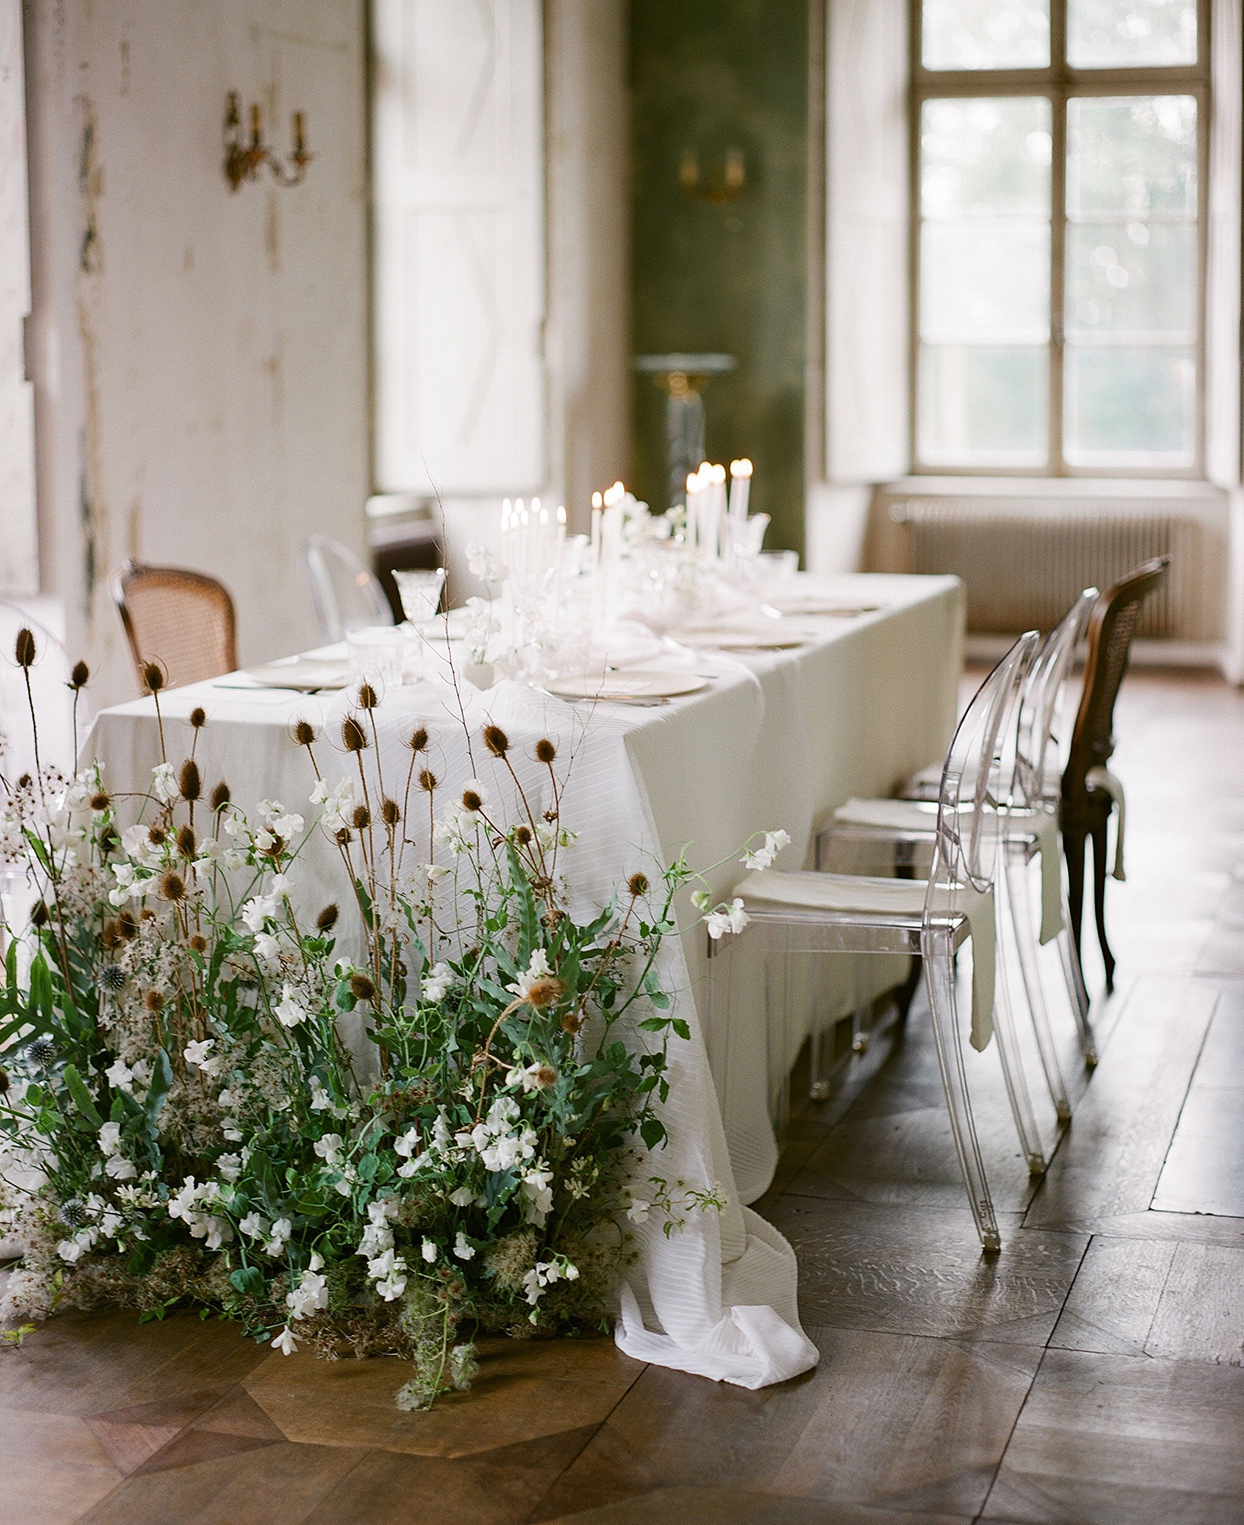 white table with floral arrangements on the floor